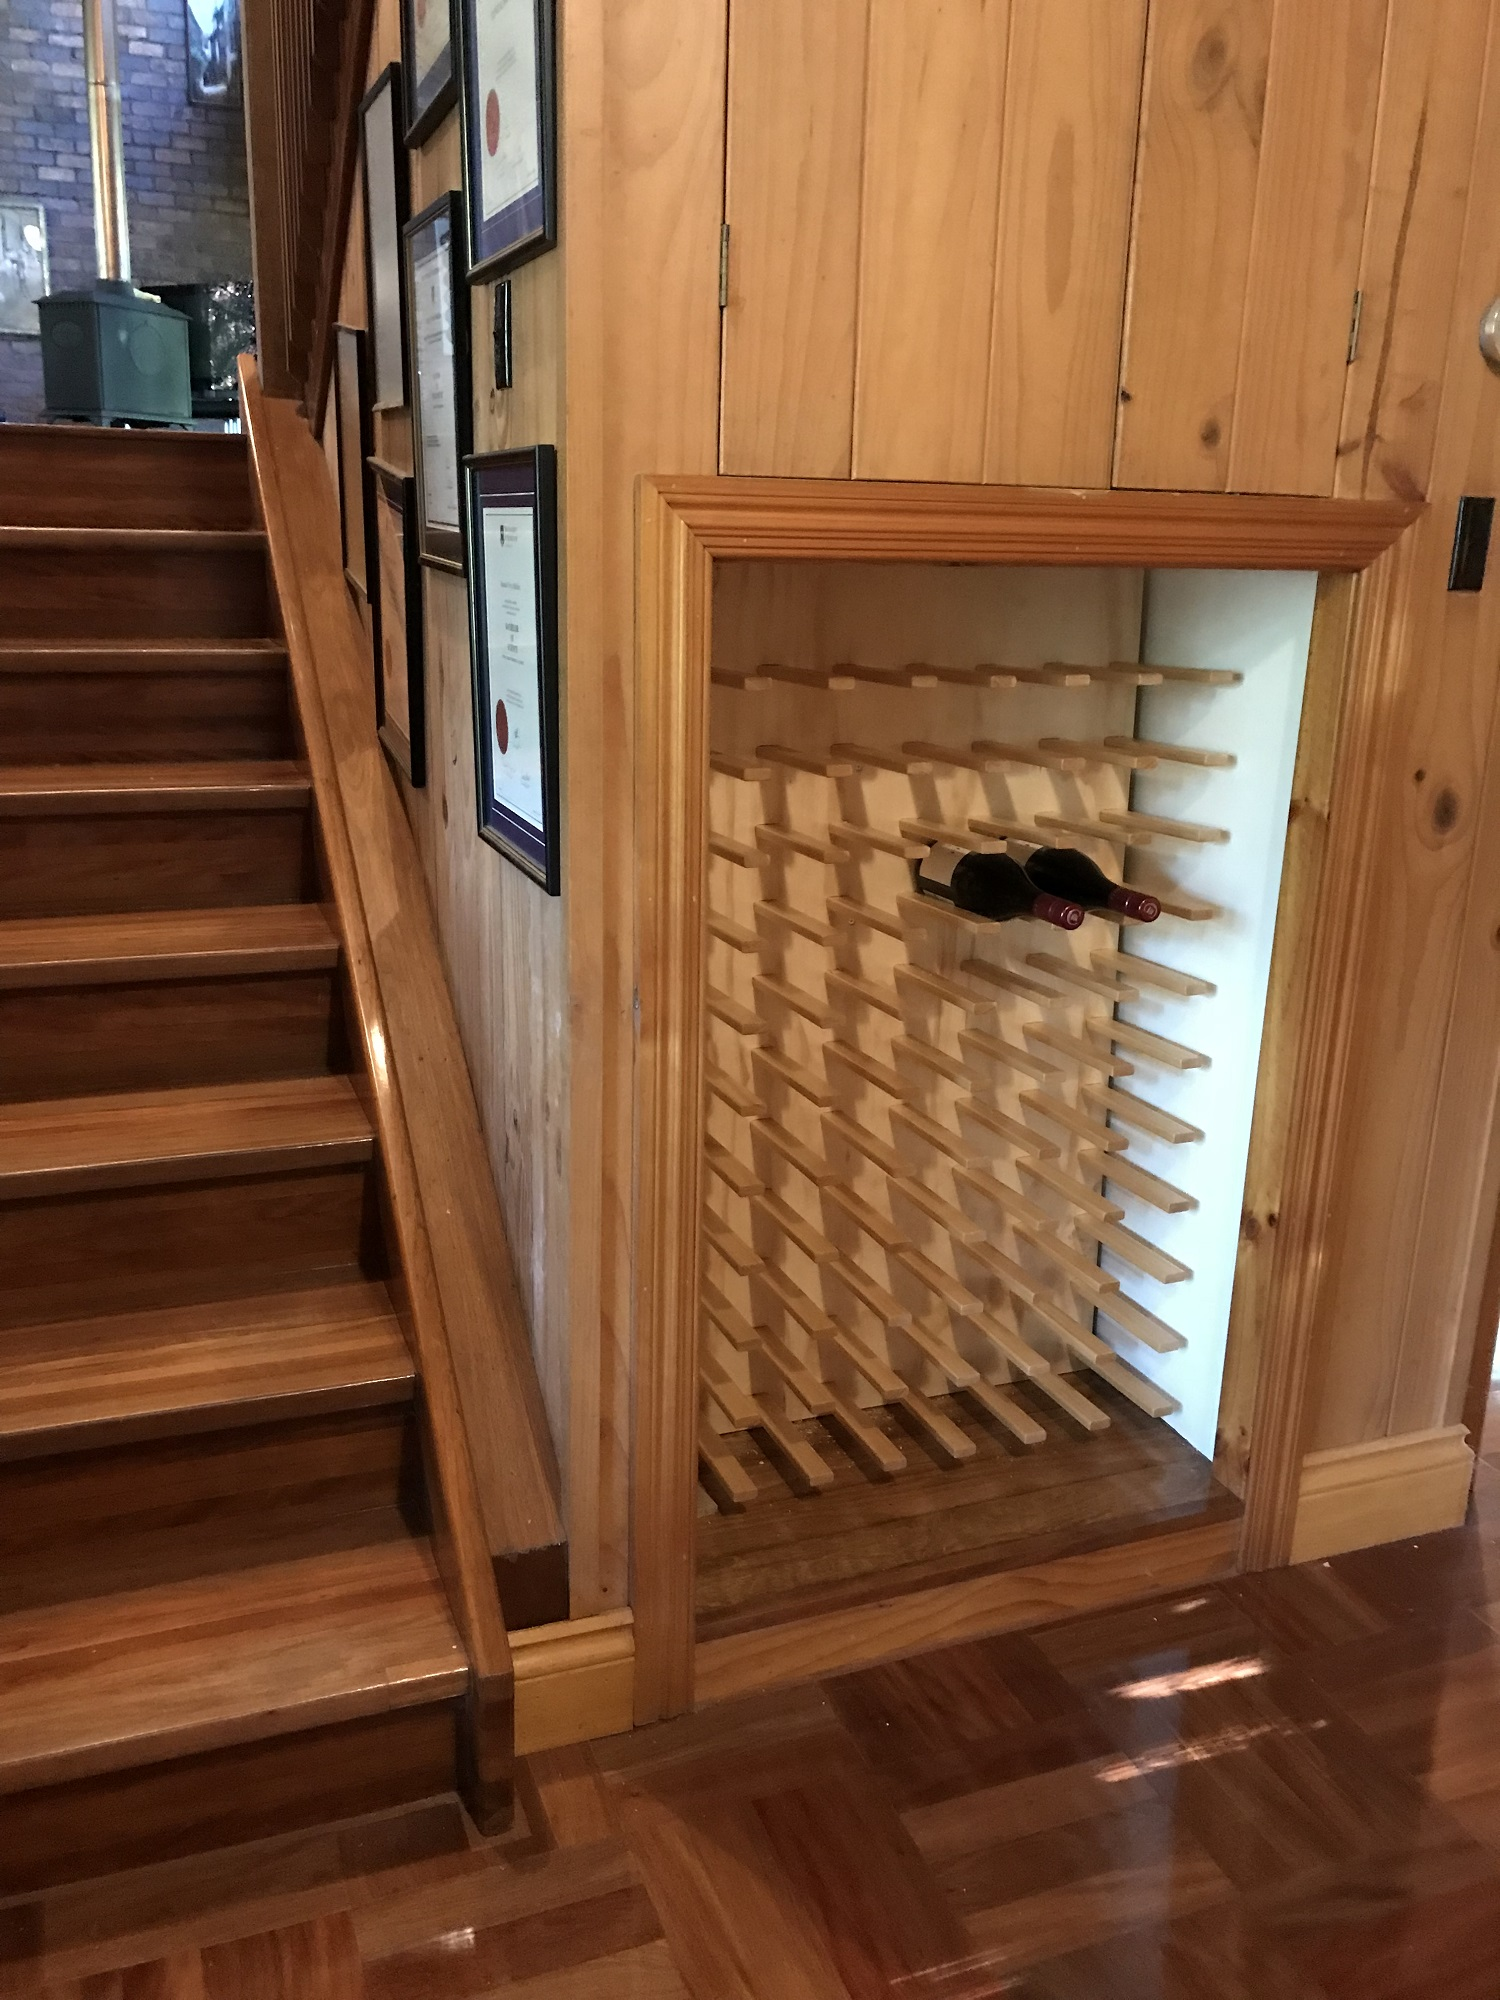 What a wonderful use for under the stairs